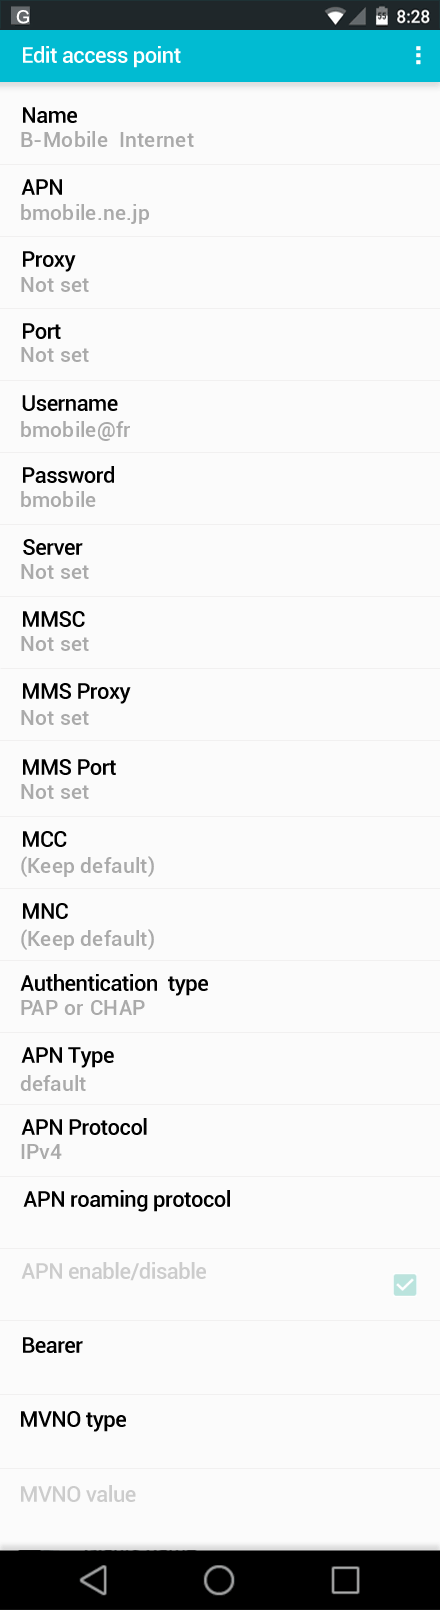 B-Mobile  Internet APN settings for Android